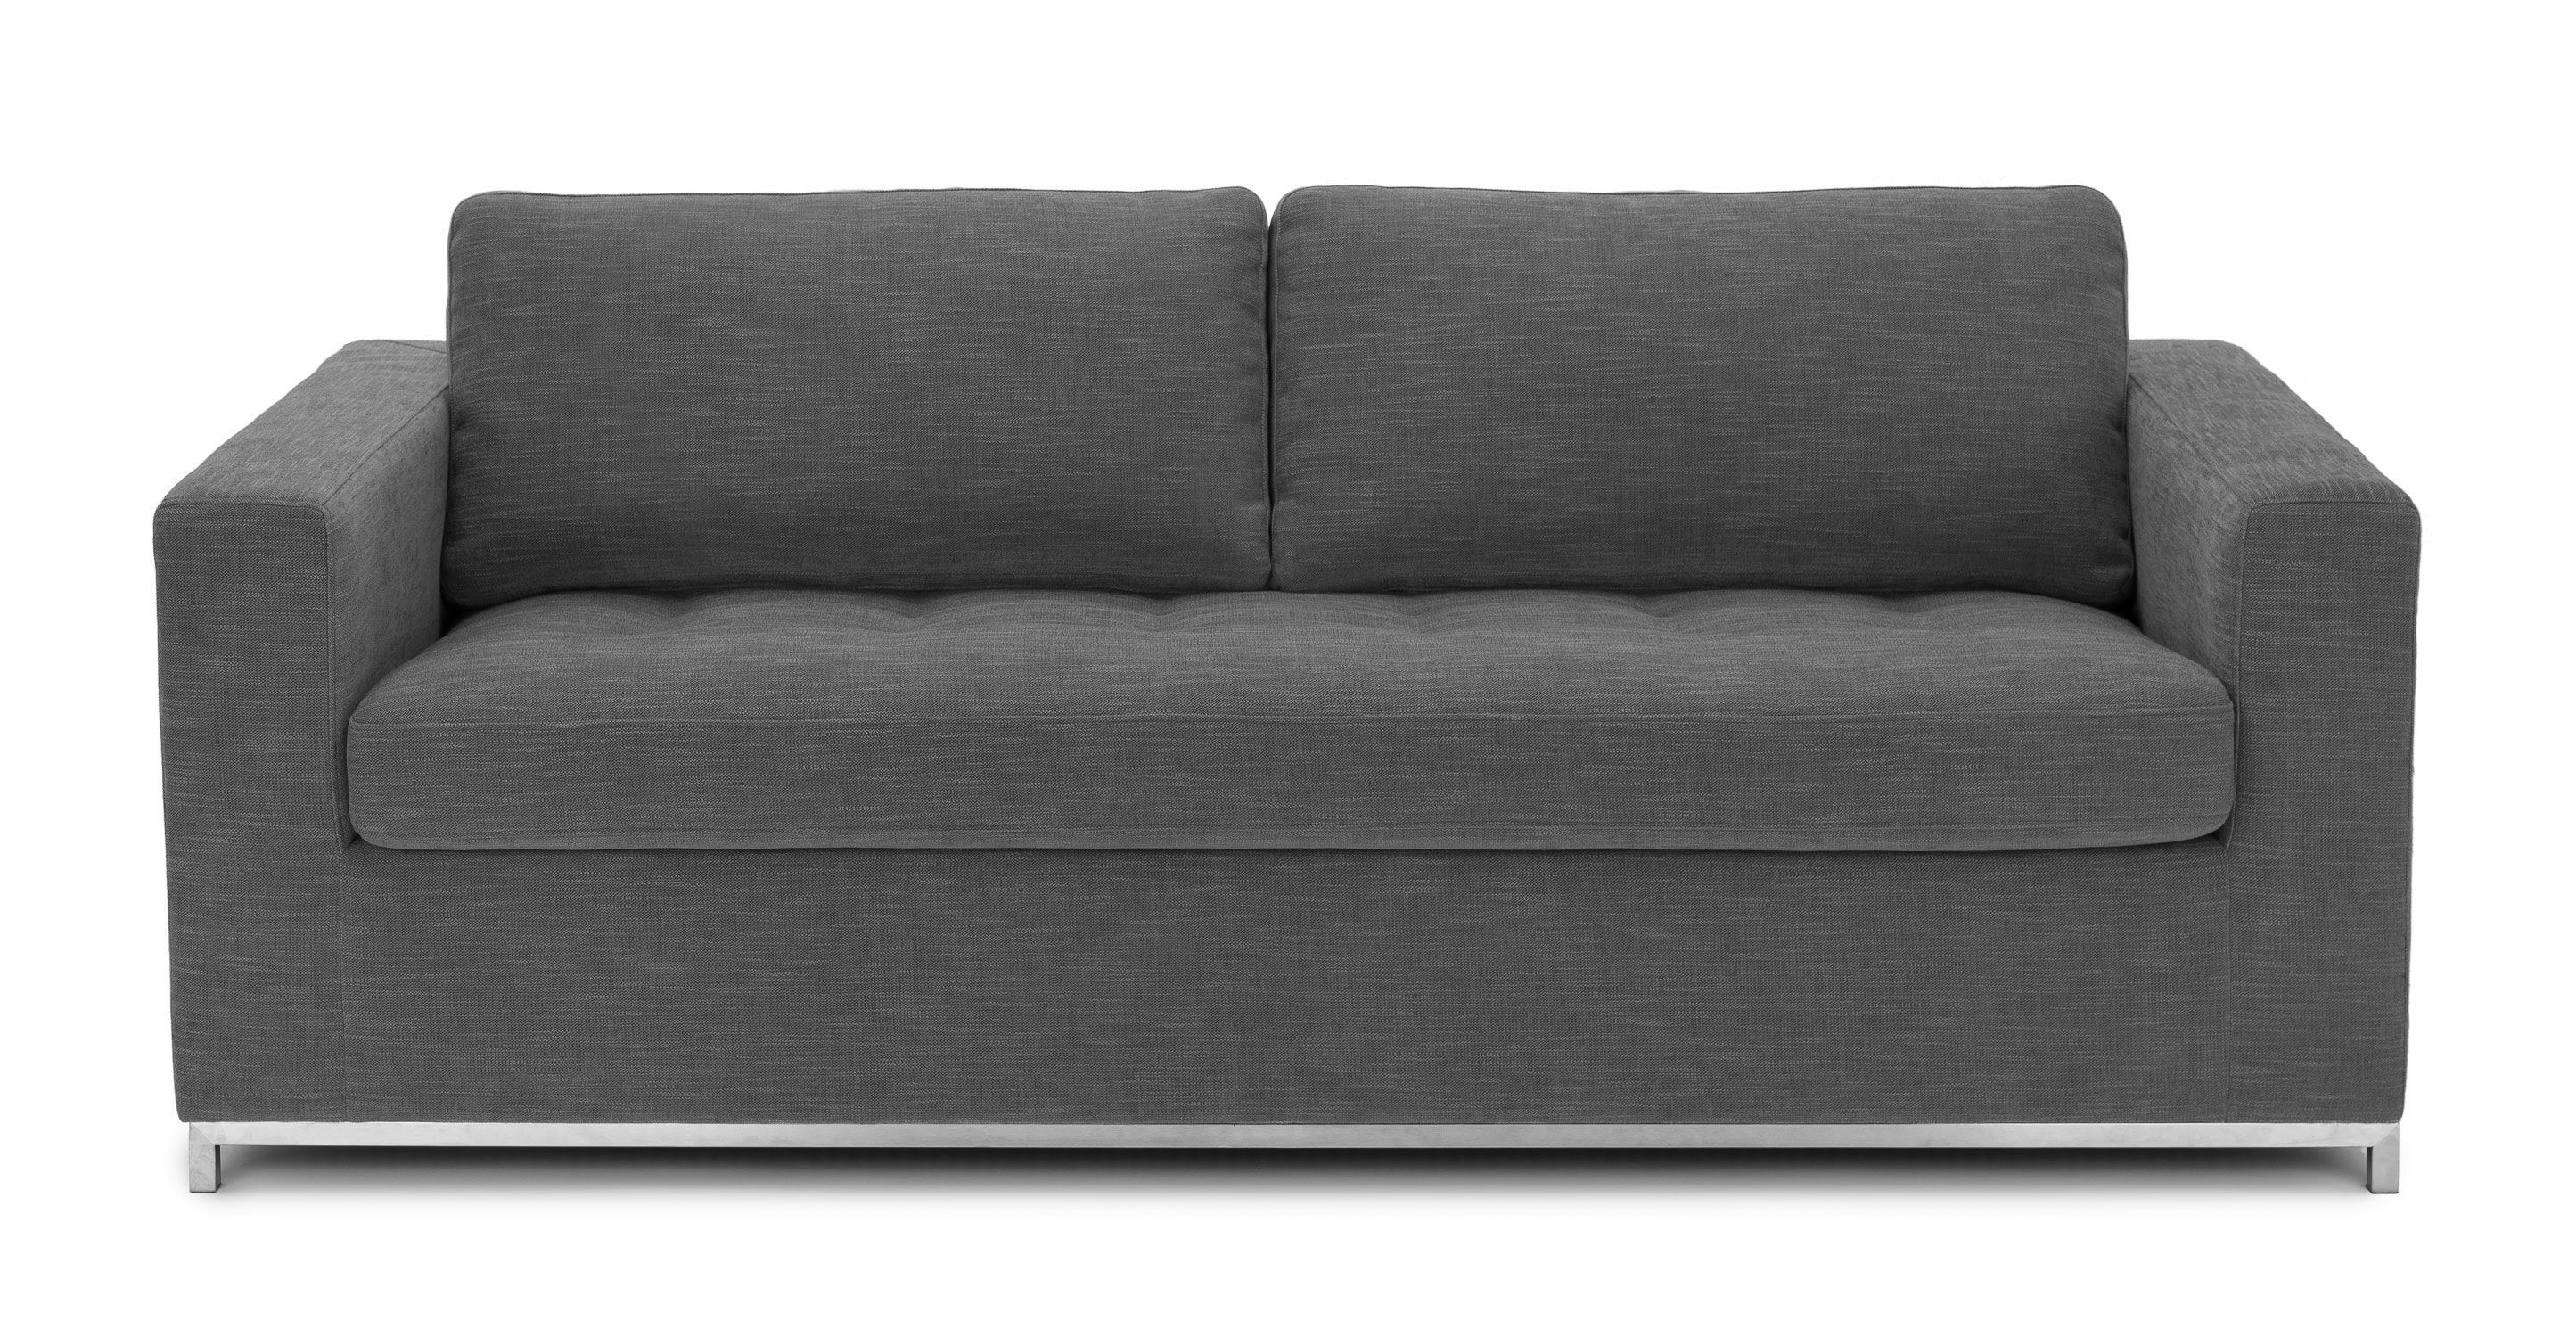 Couch Bett 26 Best Of Grey Klick Klack Sofa Bett Sofa Sofa Grey Sofa Bed